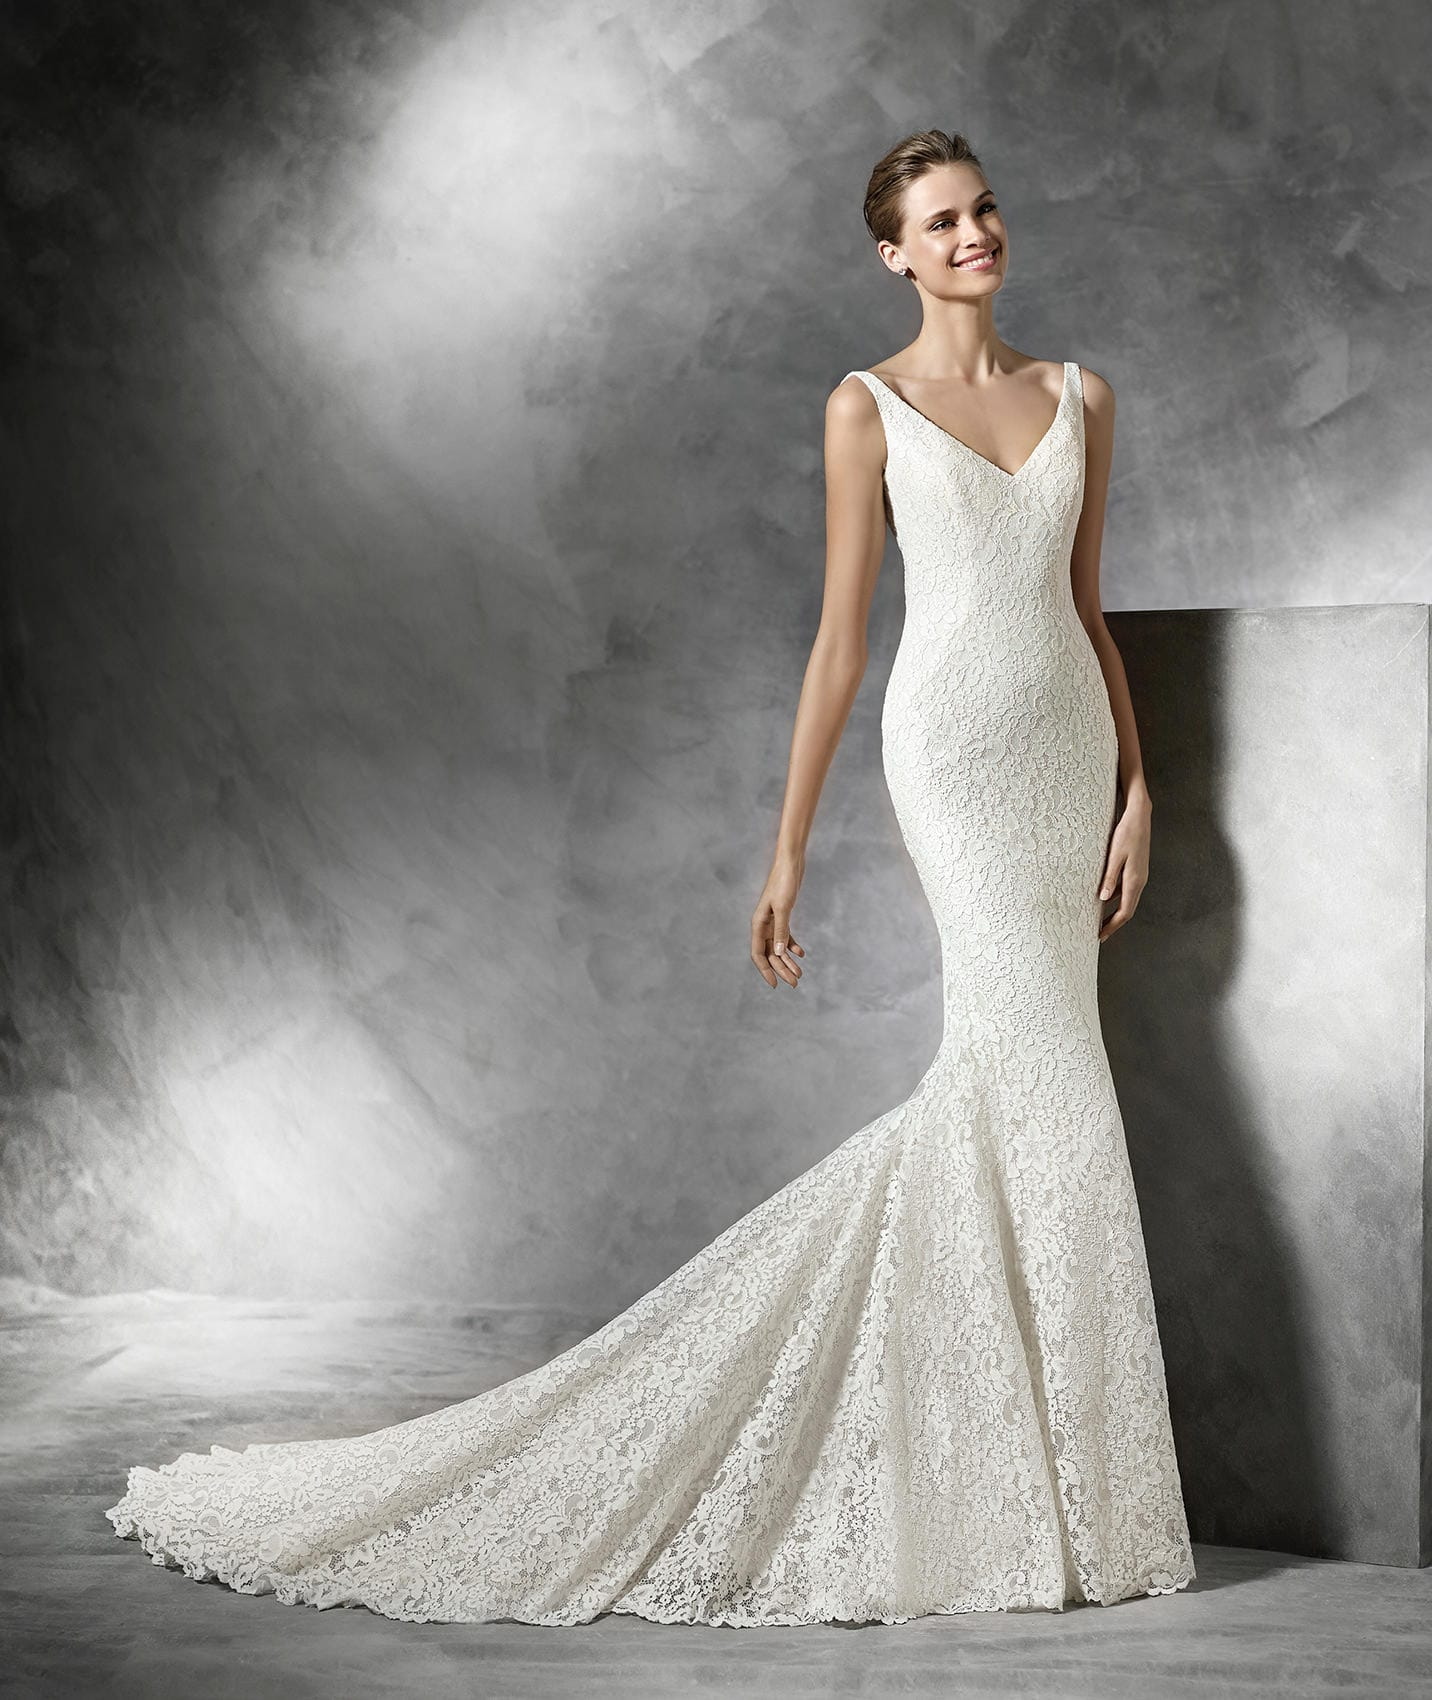 Pronovias maricel sell my wedding dress online sell my for Sell wedding dress for free